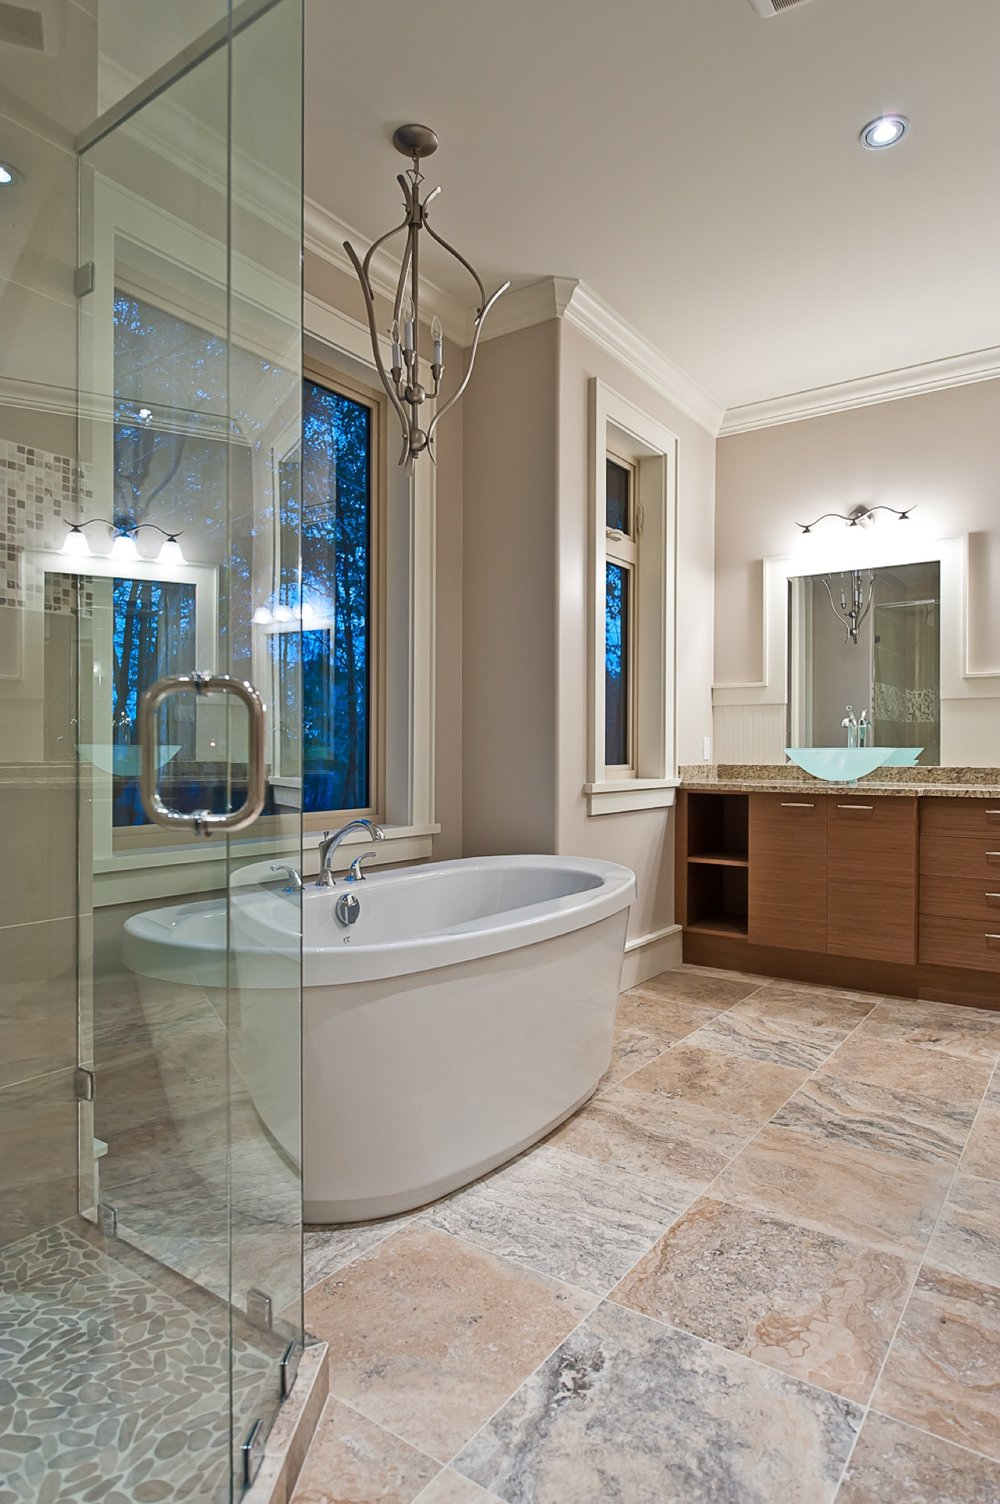 Paul Dabbs Custom Homes - Bonnington 26.jpg